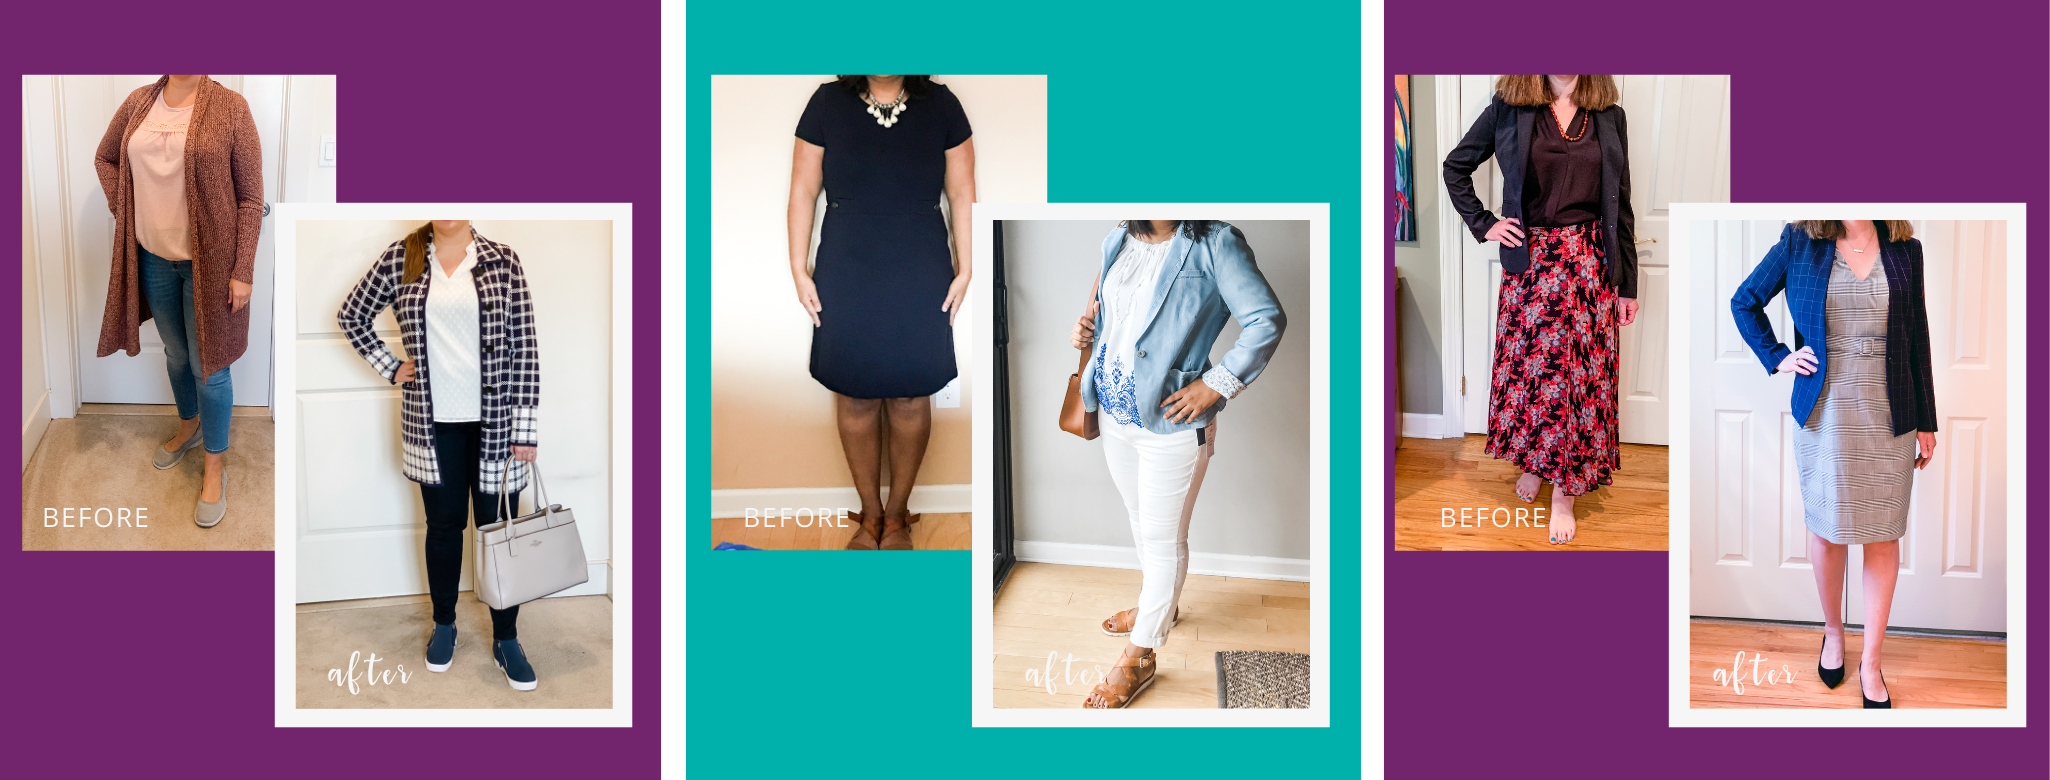 testimonials from women styled by Neepa Sikdar, creator of Rise + Style monthly membership